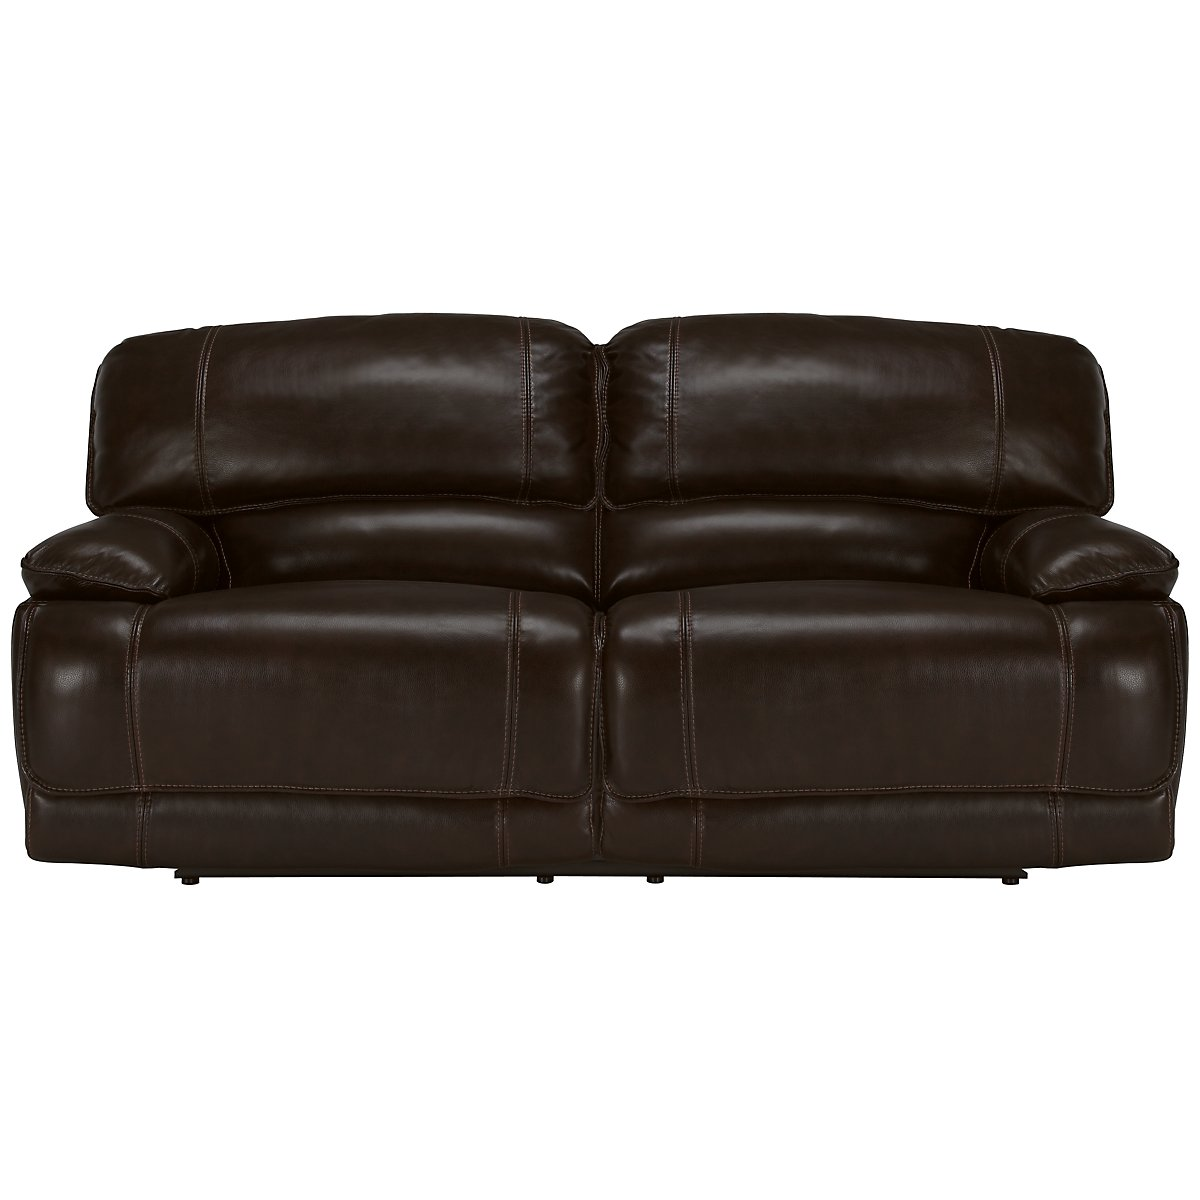 Benson Dk Brown Leather & Vinyl Reclining Sofa